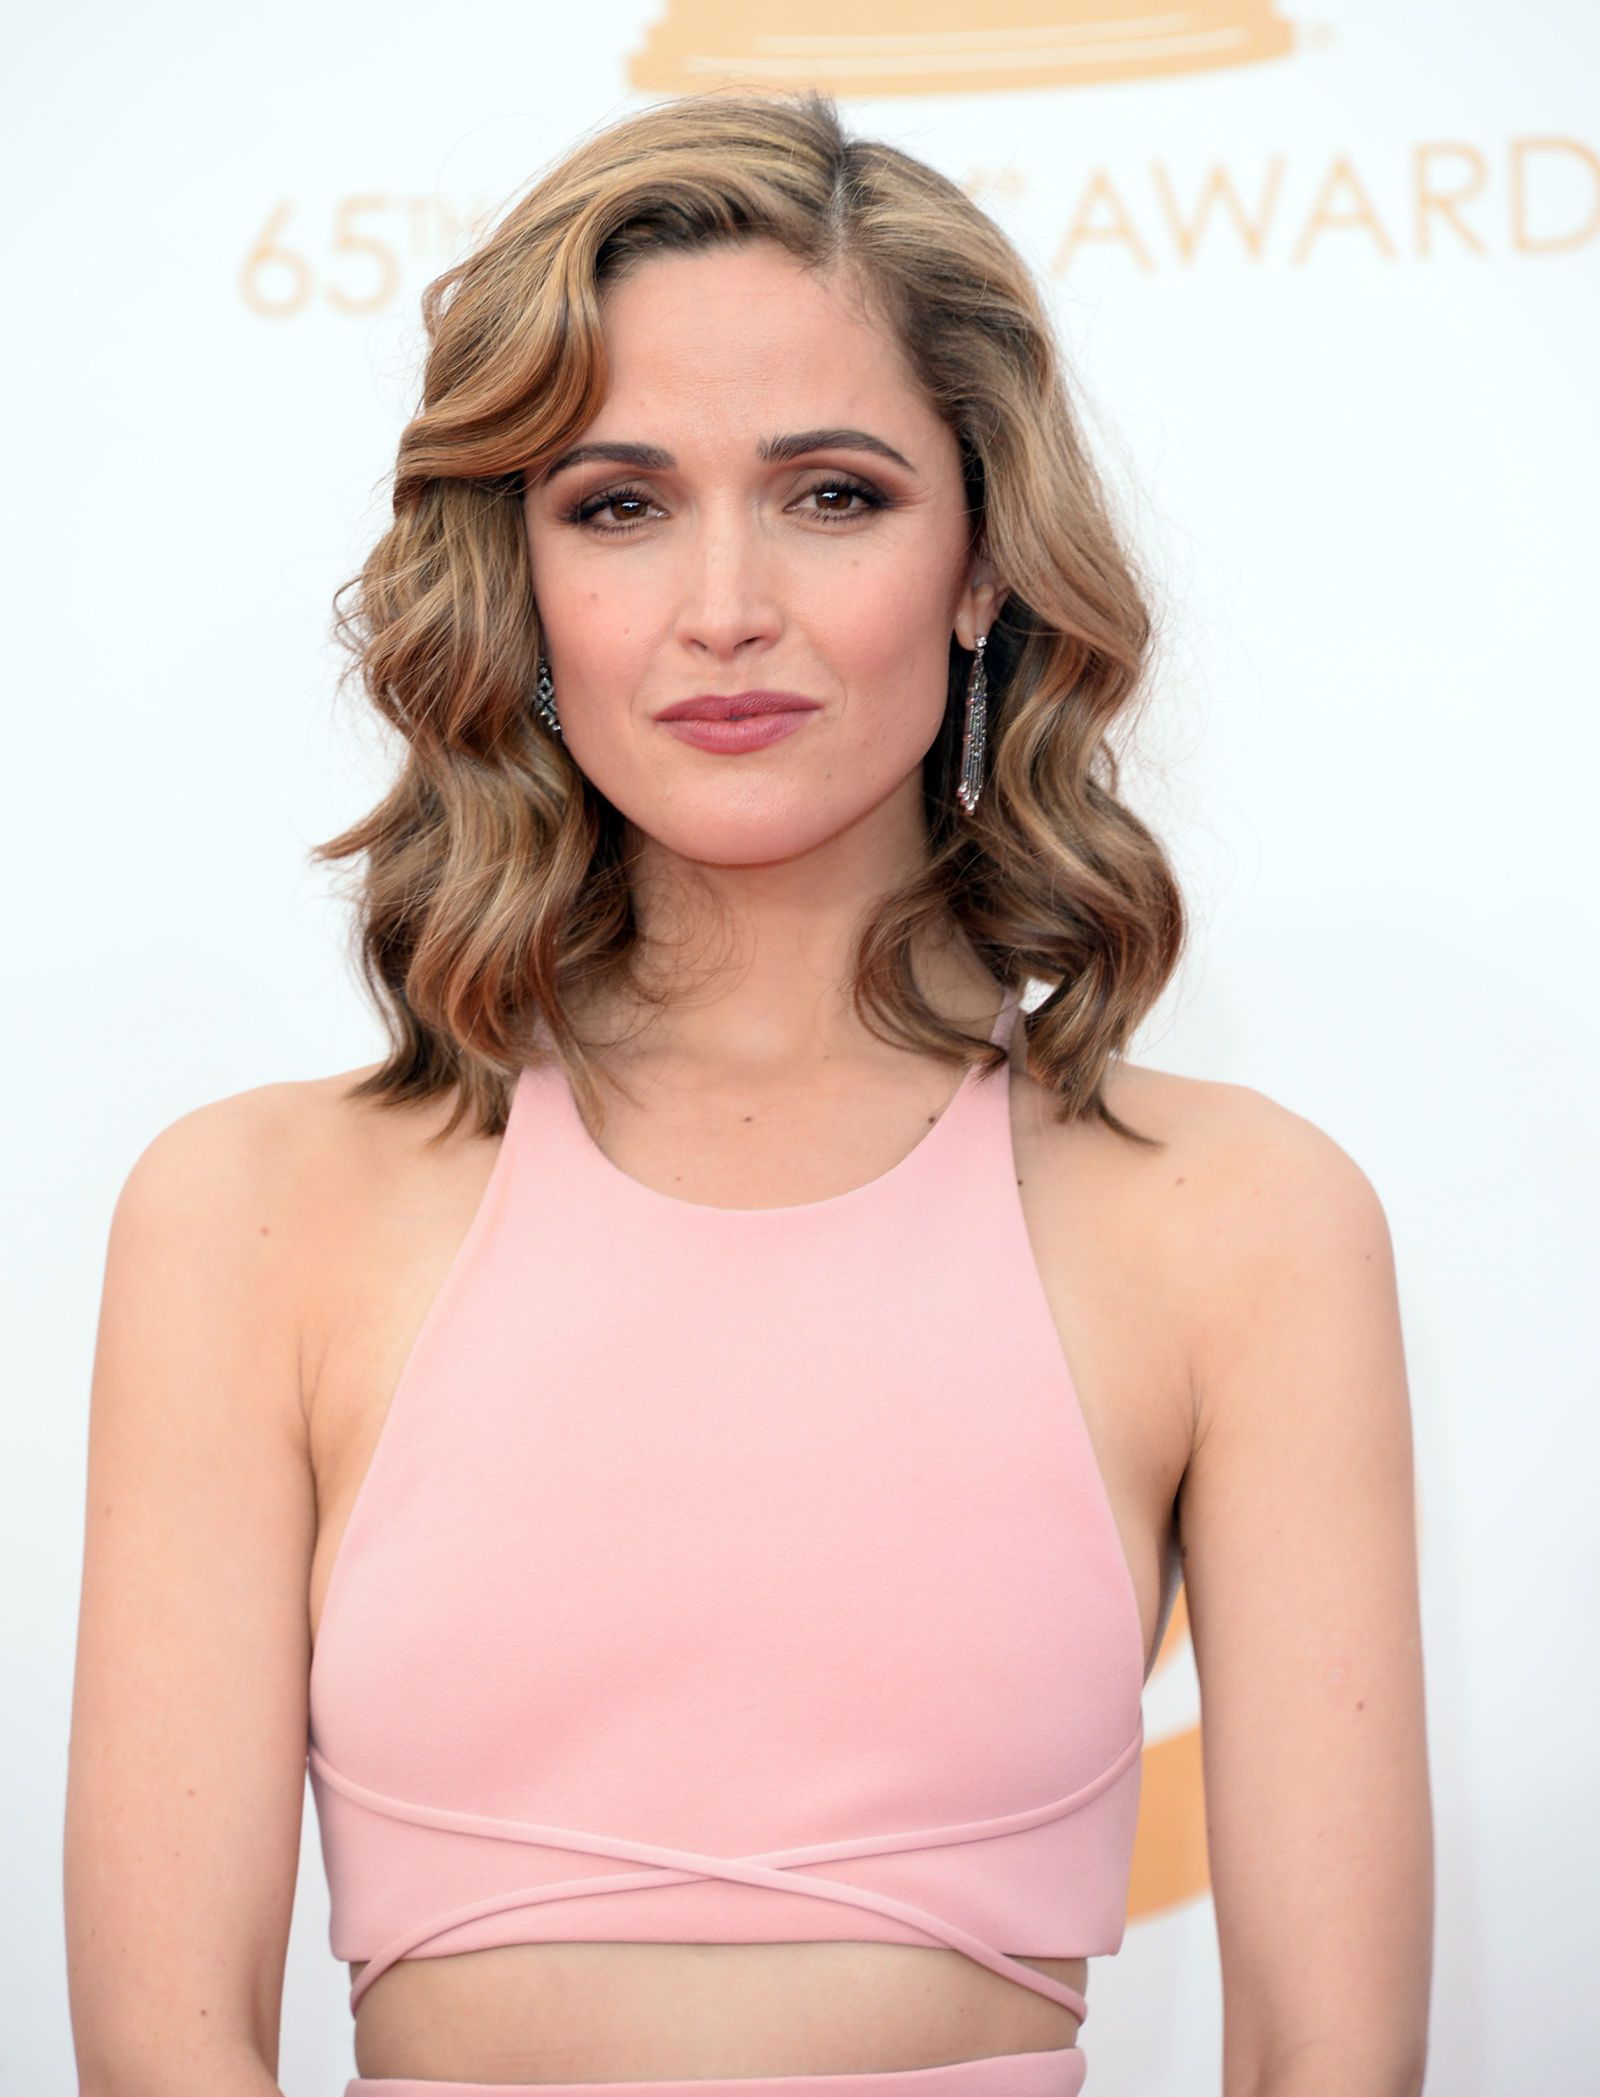 60 Medium-Length Hairstyles to Steal from Celebs | Hairstyles ...